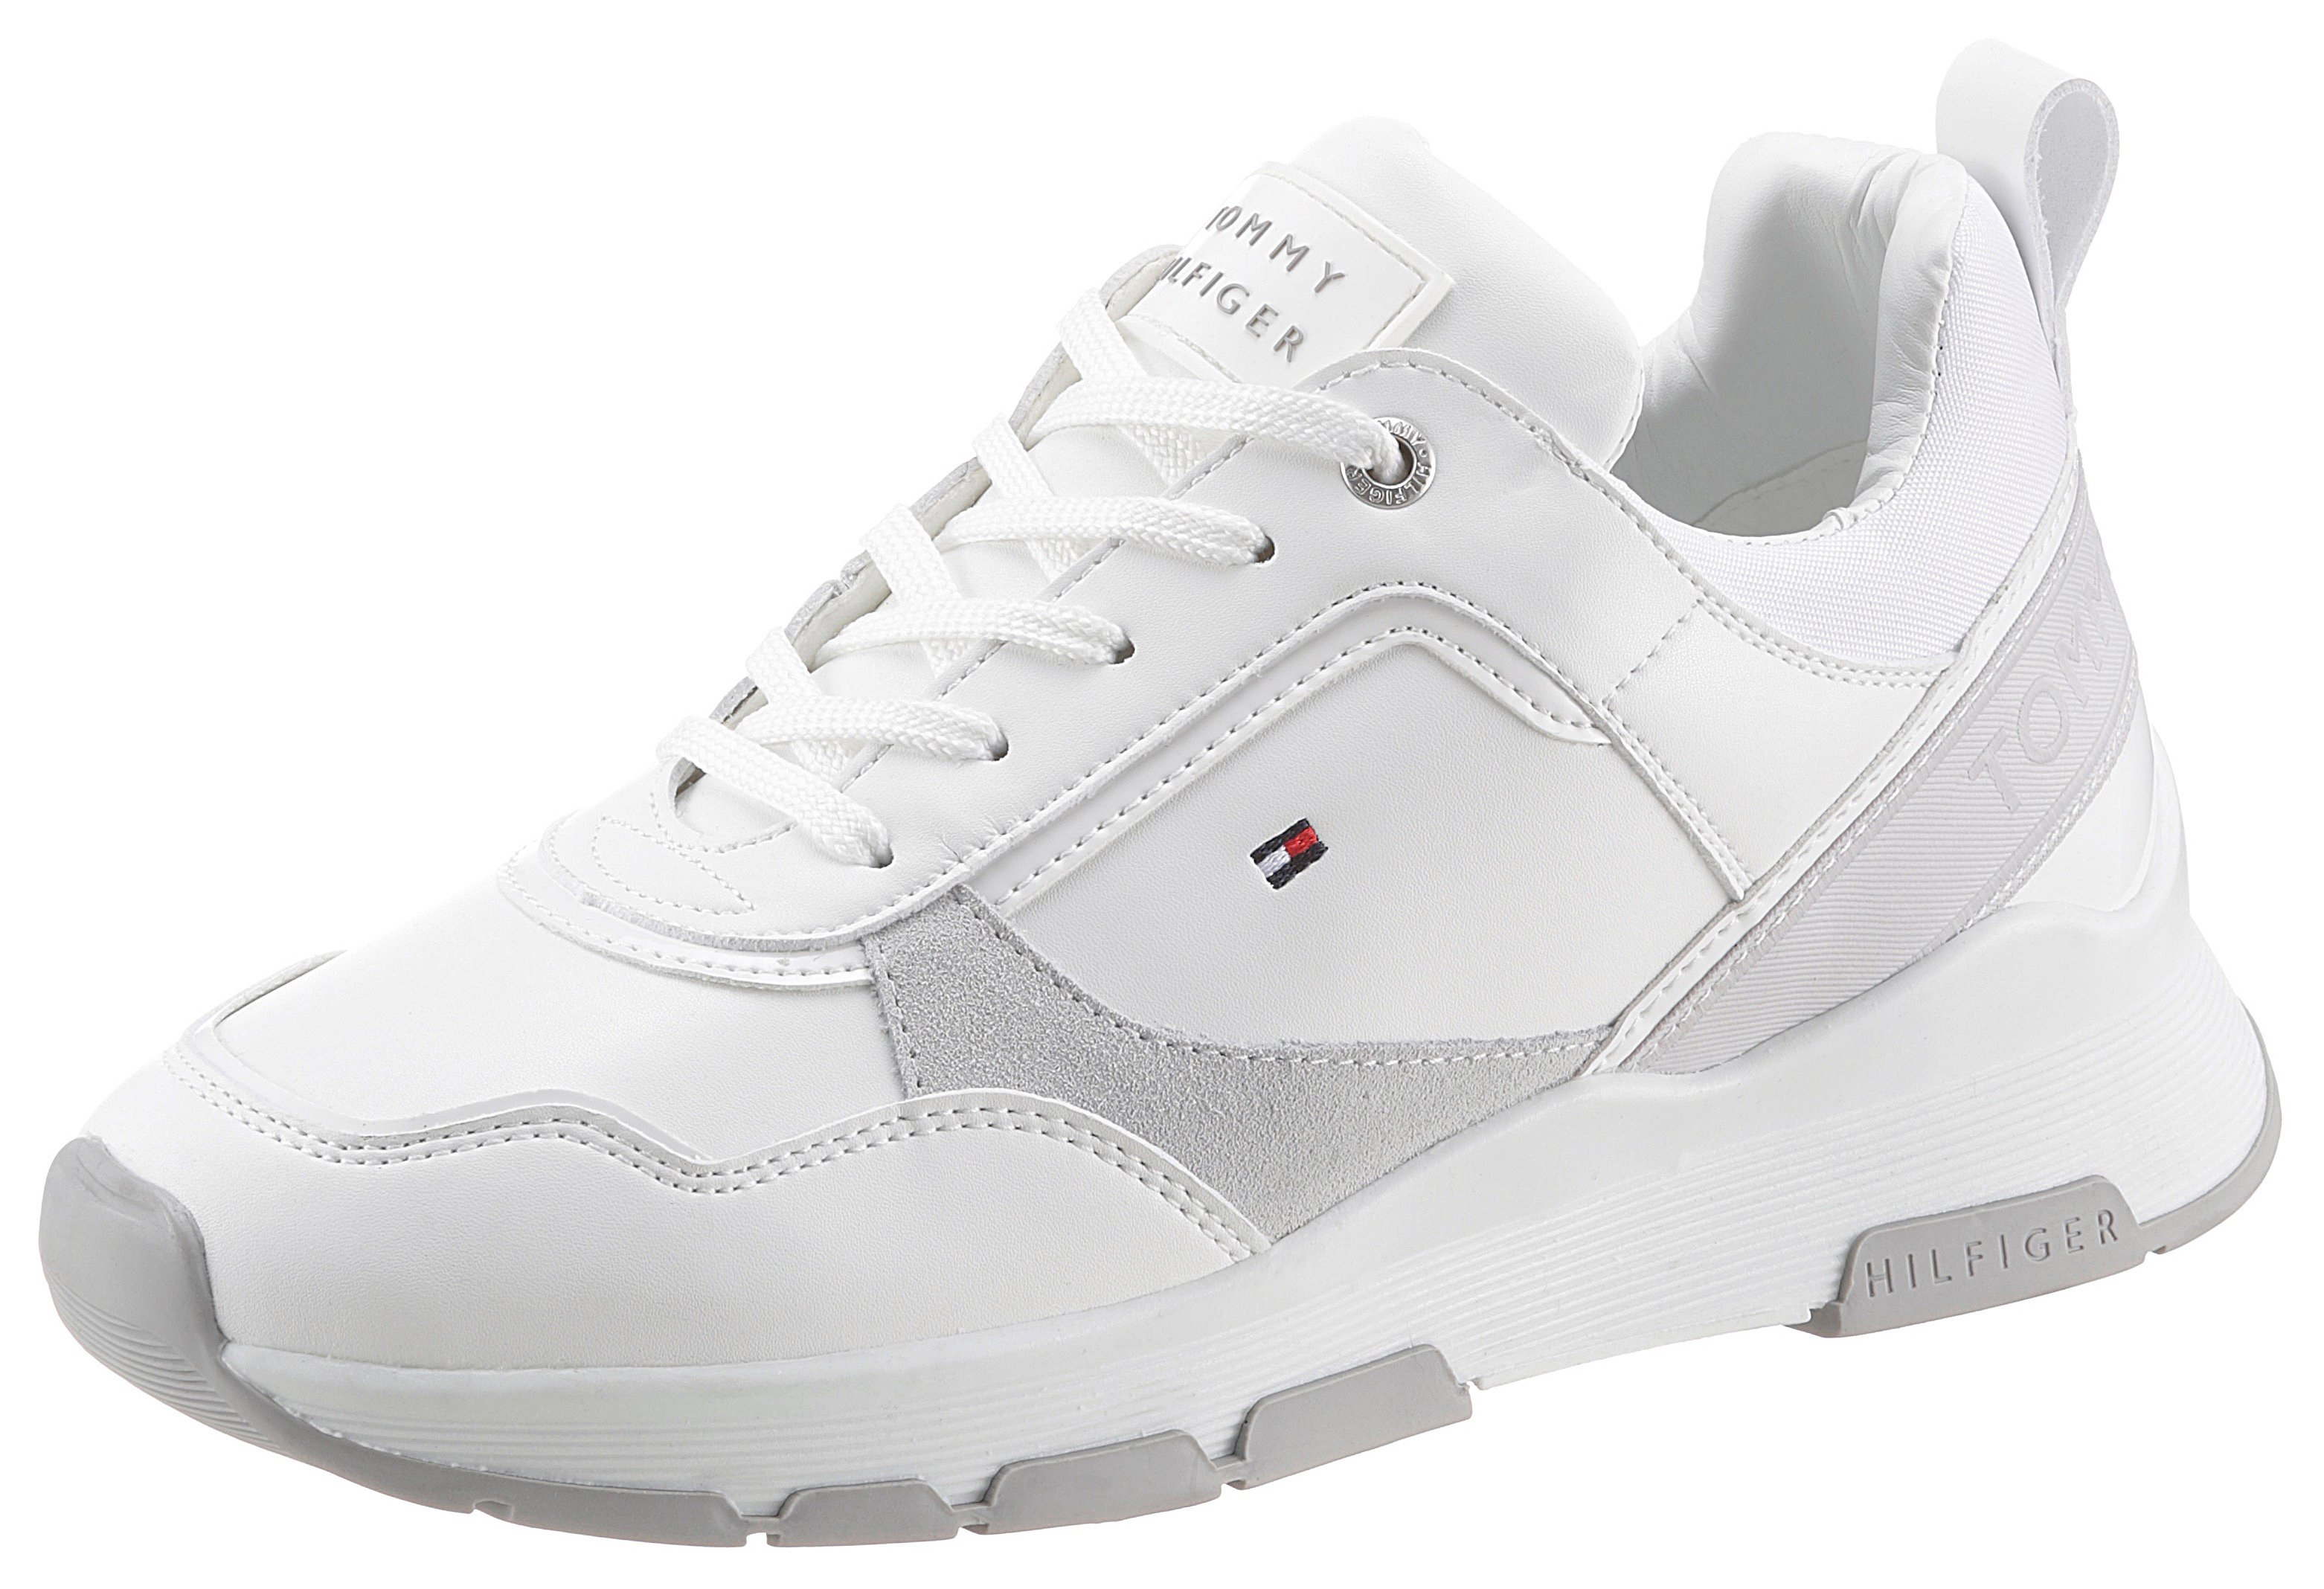 TOMMY HILFIGER sneakers »SPORTY CHUNKY LEATHER SNEAKER« - verschillende betaalmethodes